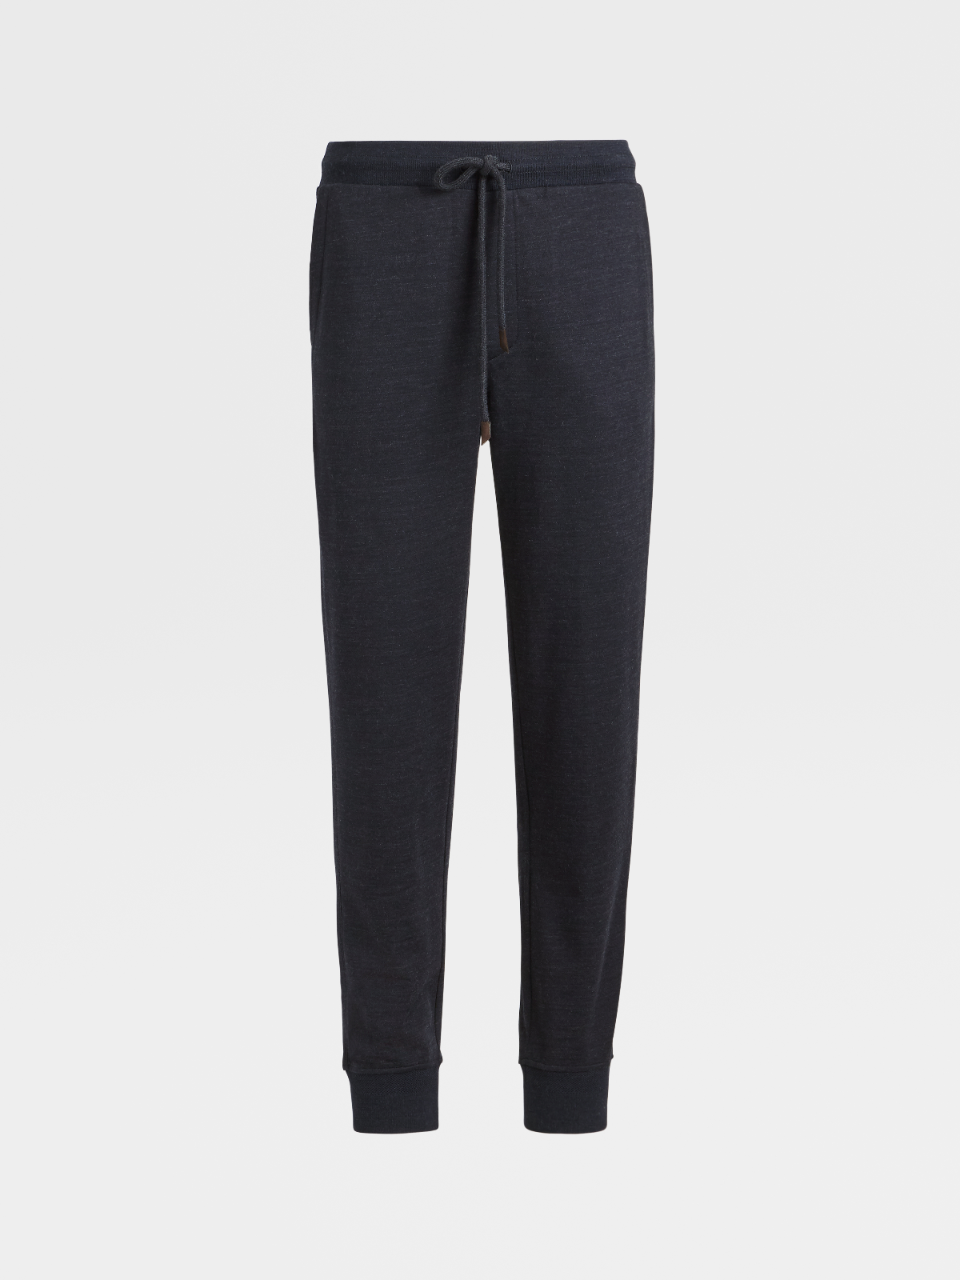 Wool Silk And Cotton Sweatpants